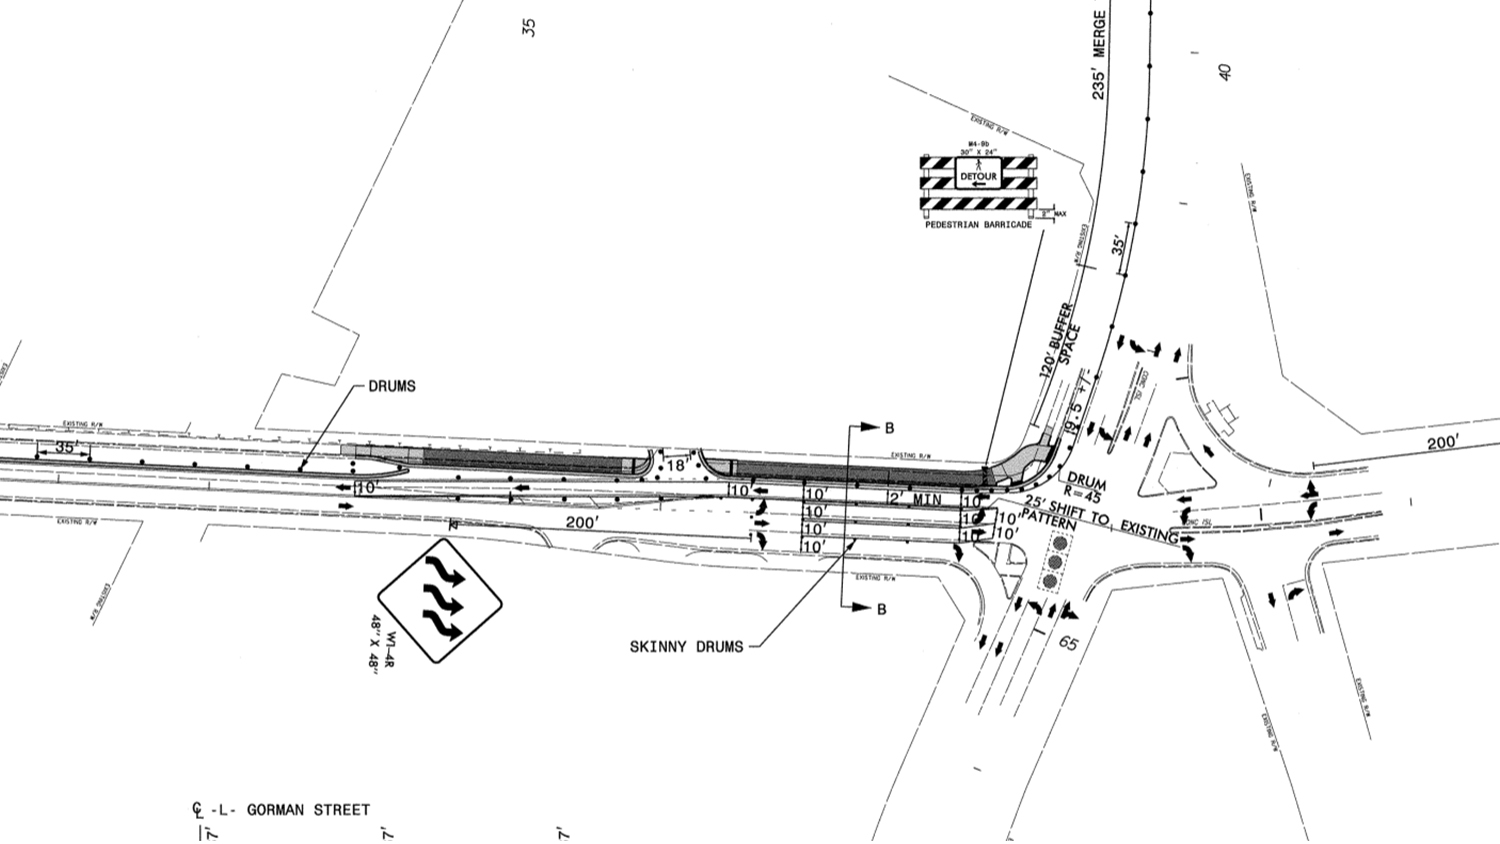 A road map showing the construction project near Gorman Street